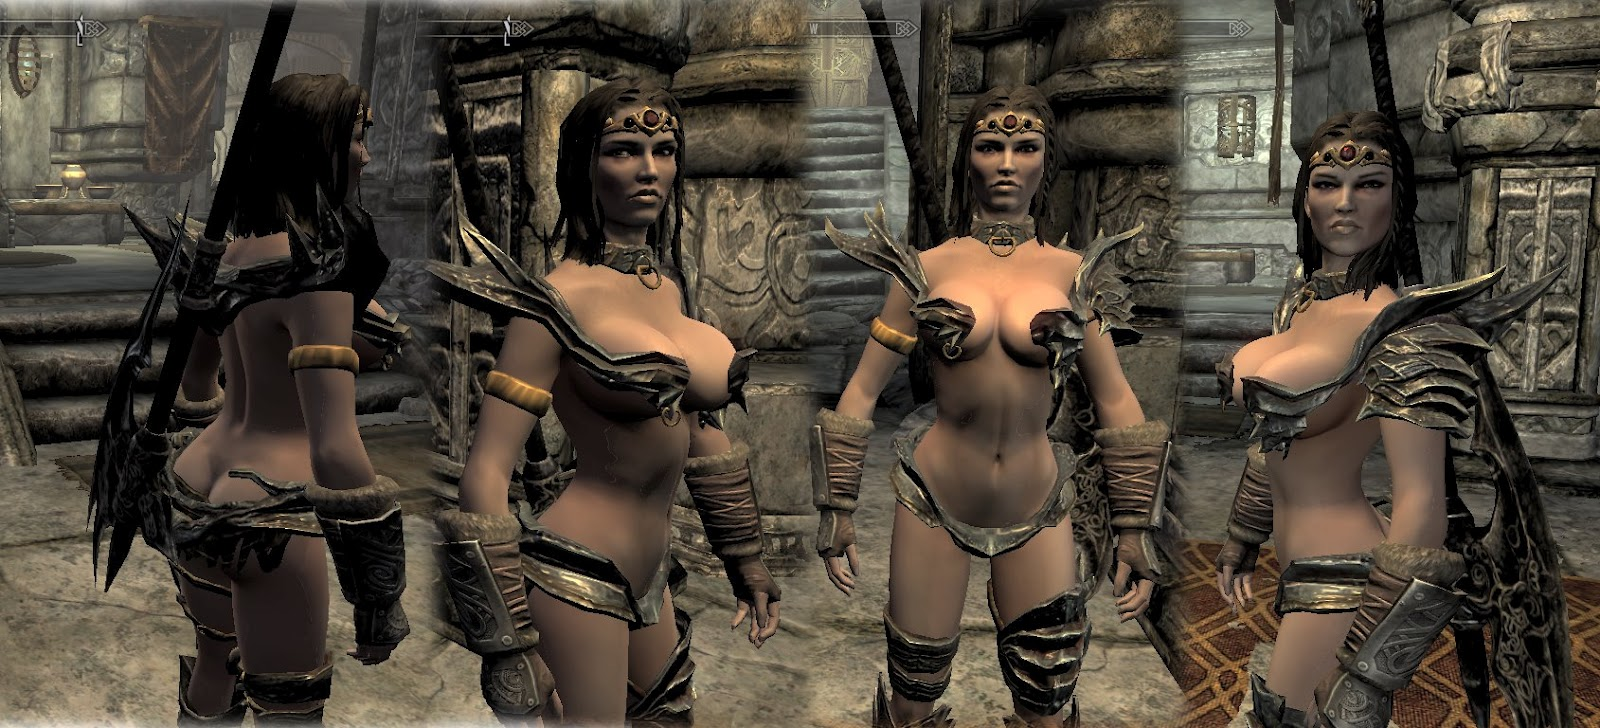 Female armor pic porn hentai galleries